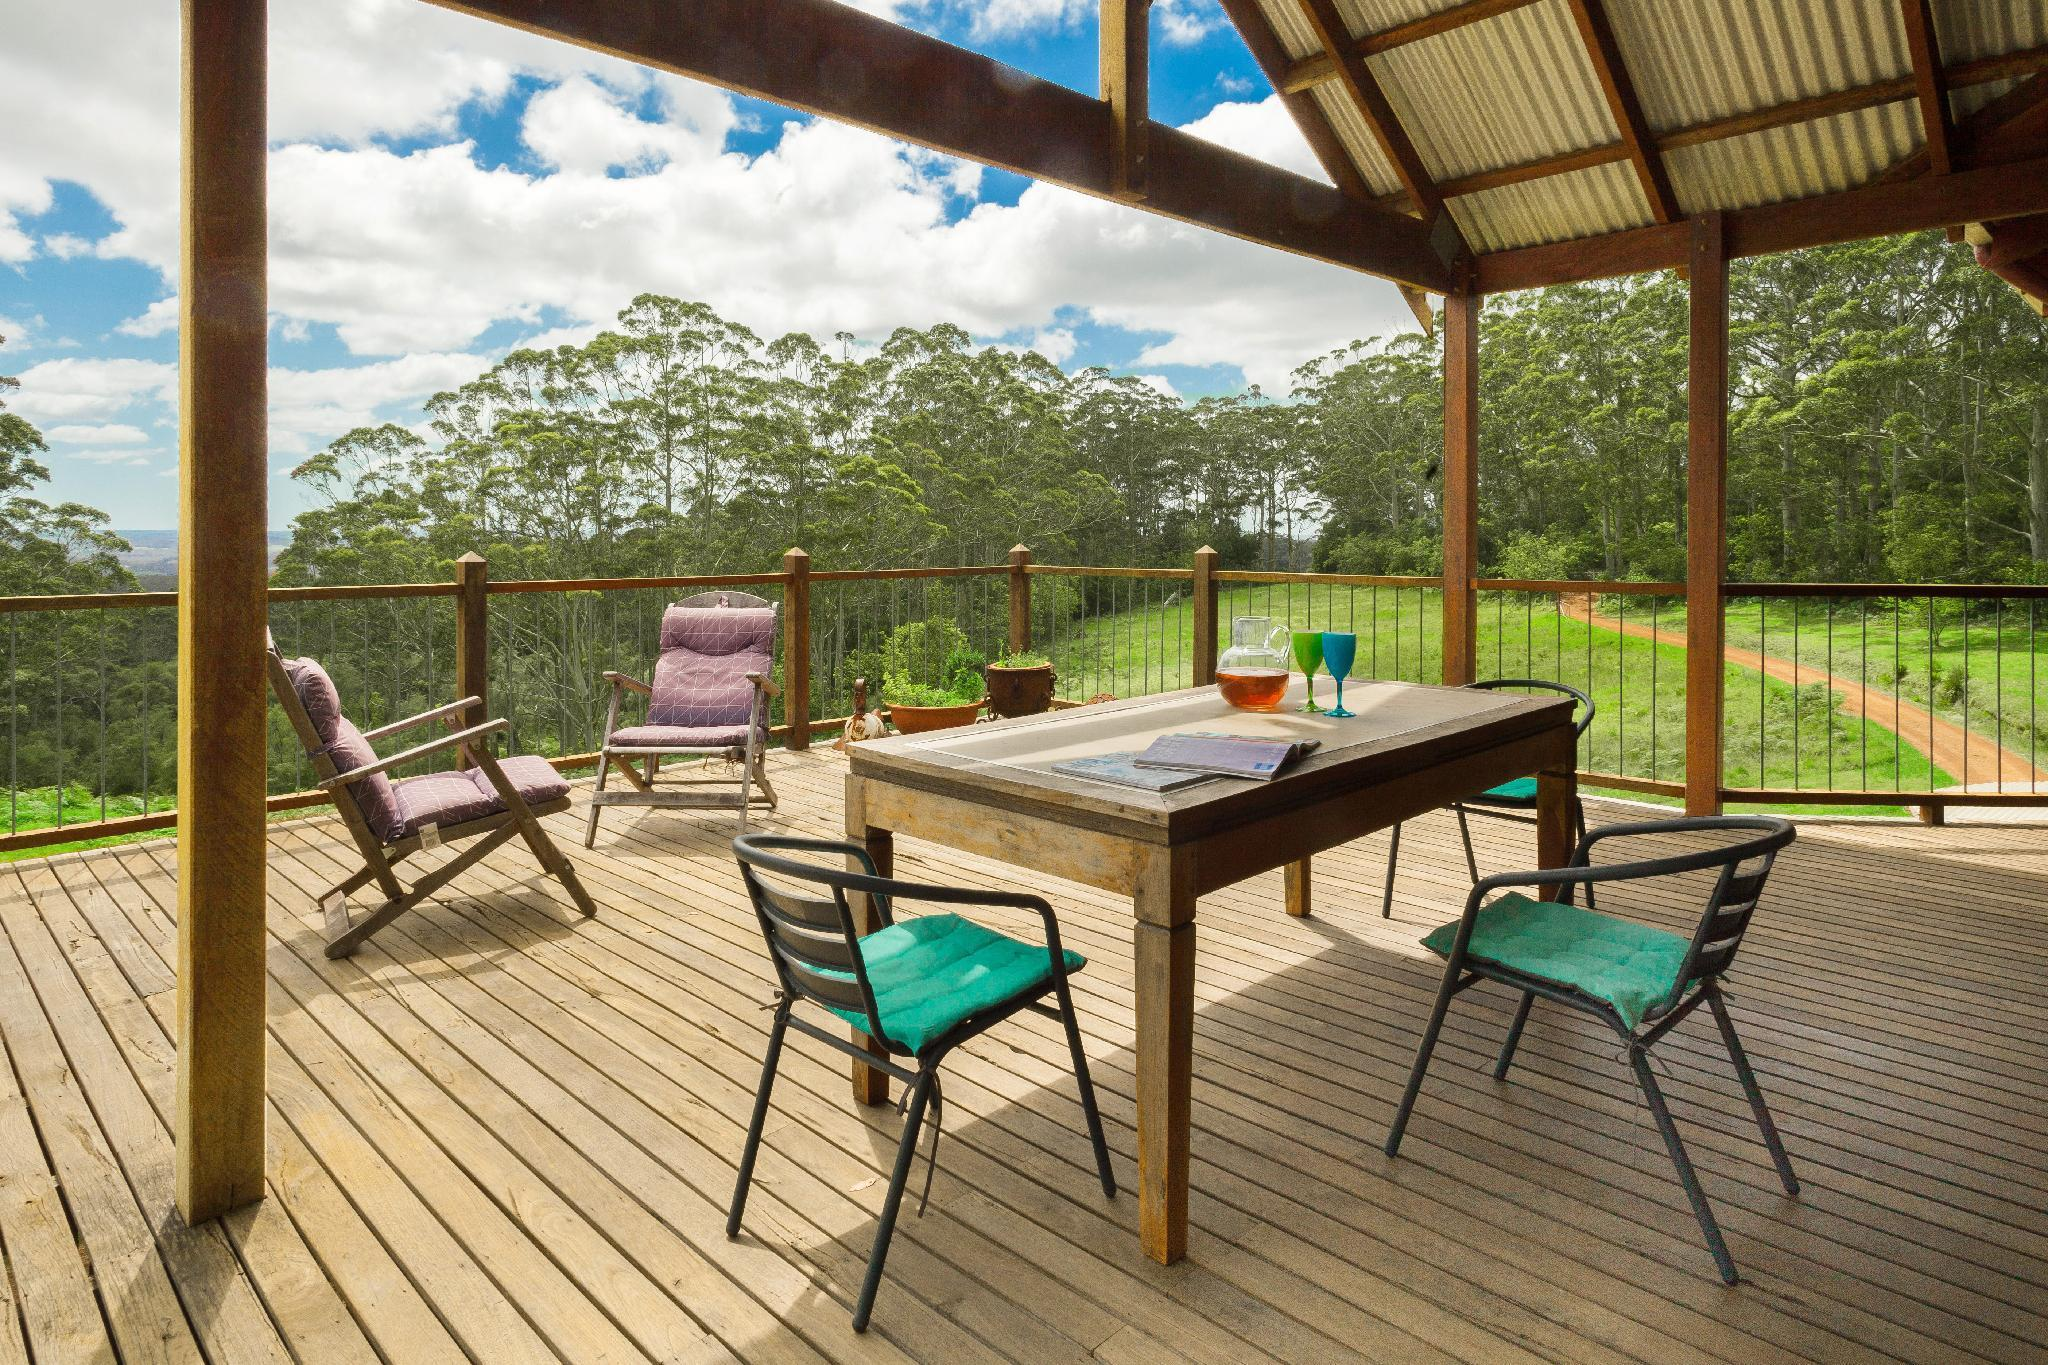 Family friendly (pets welcome), 24 acre forest